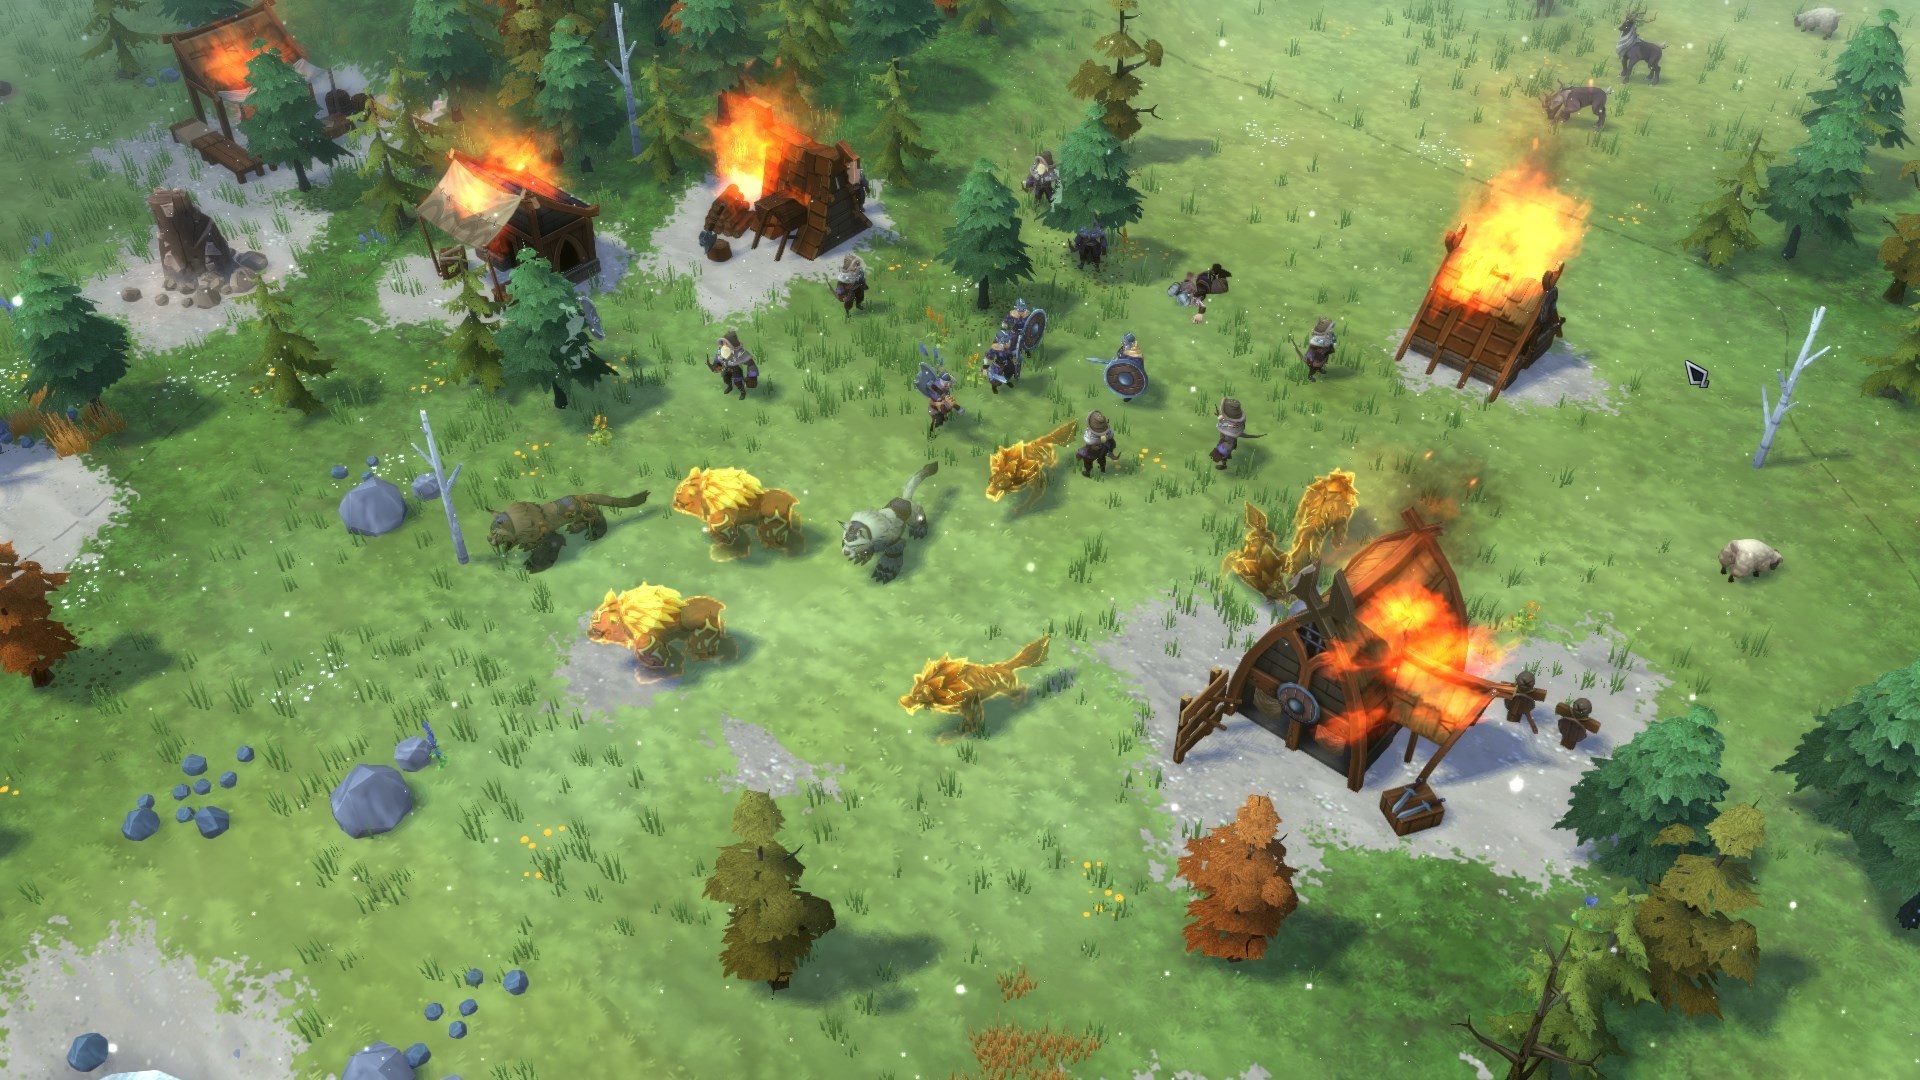 Northgard's newest DLC adds a clan with giant attack lynxes